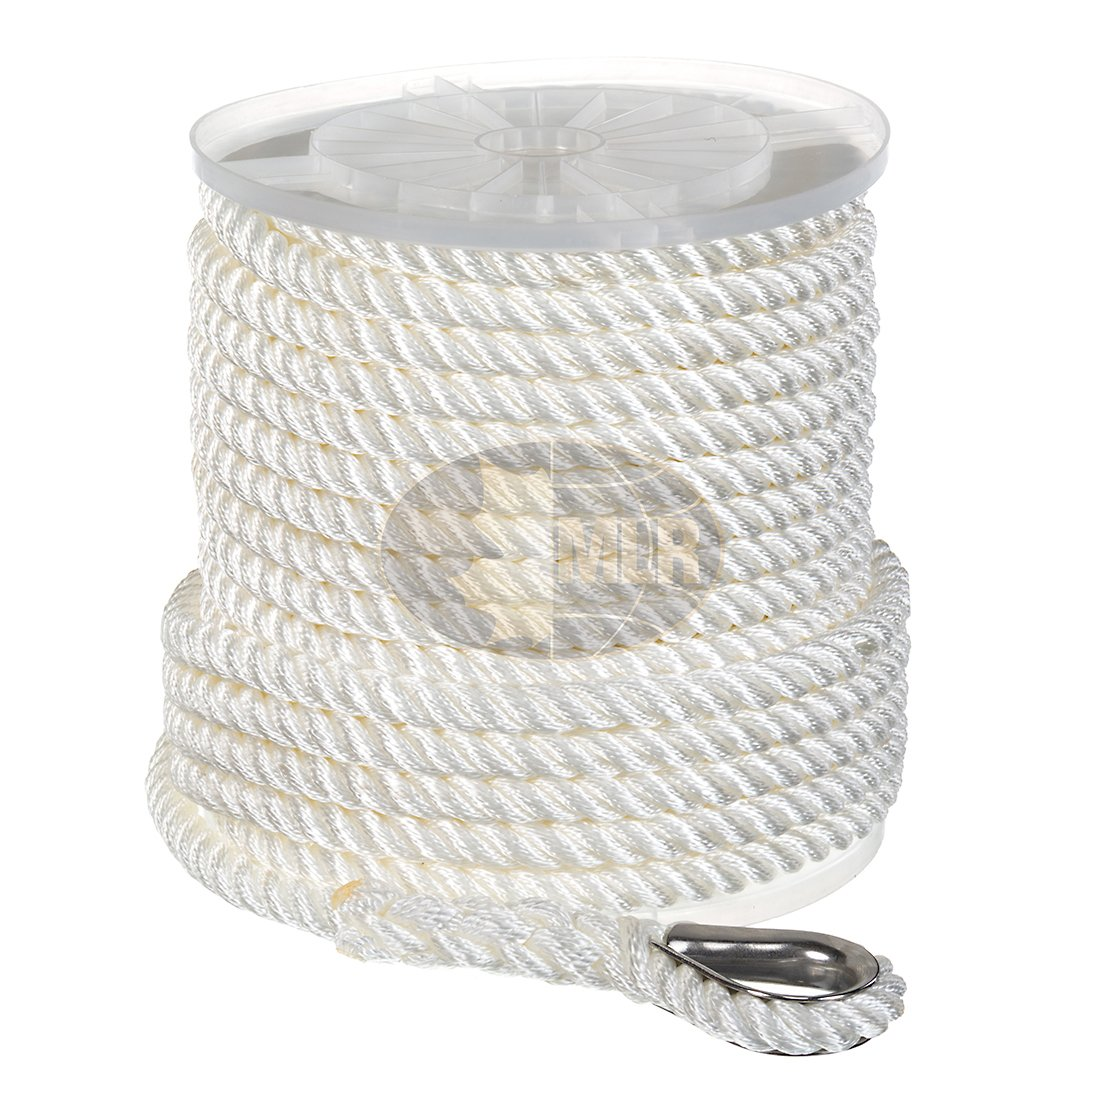 Nylon 3 Strand Anchor/Rigging Line 5/8'' x 100' White